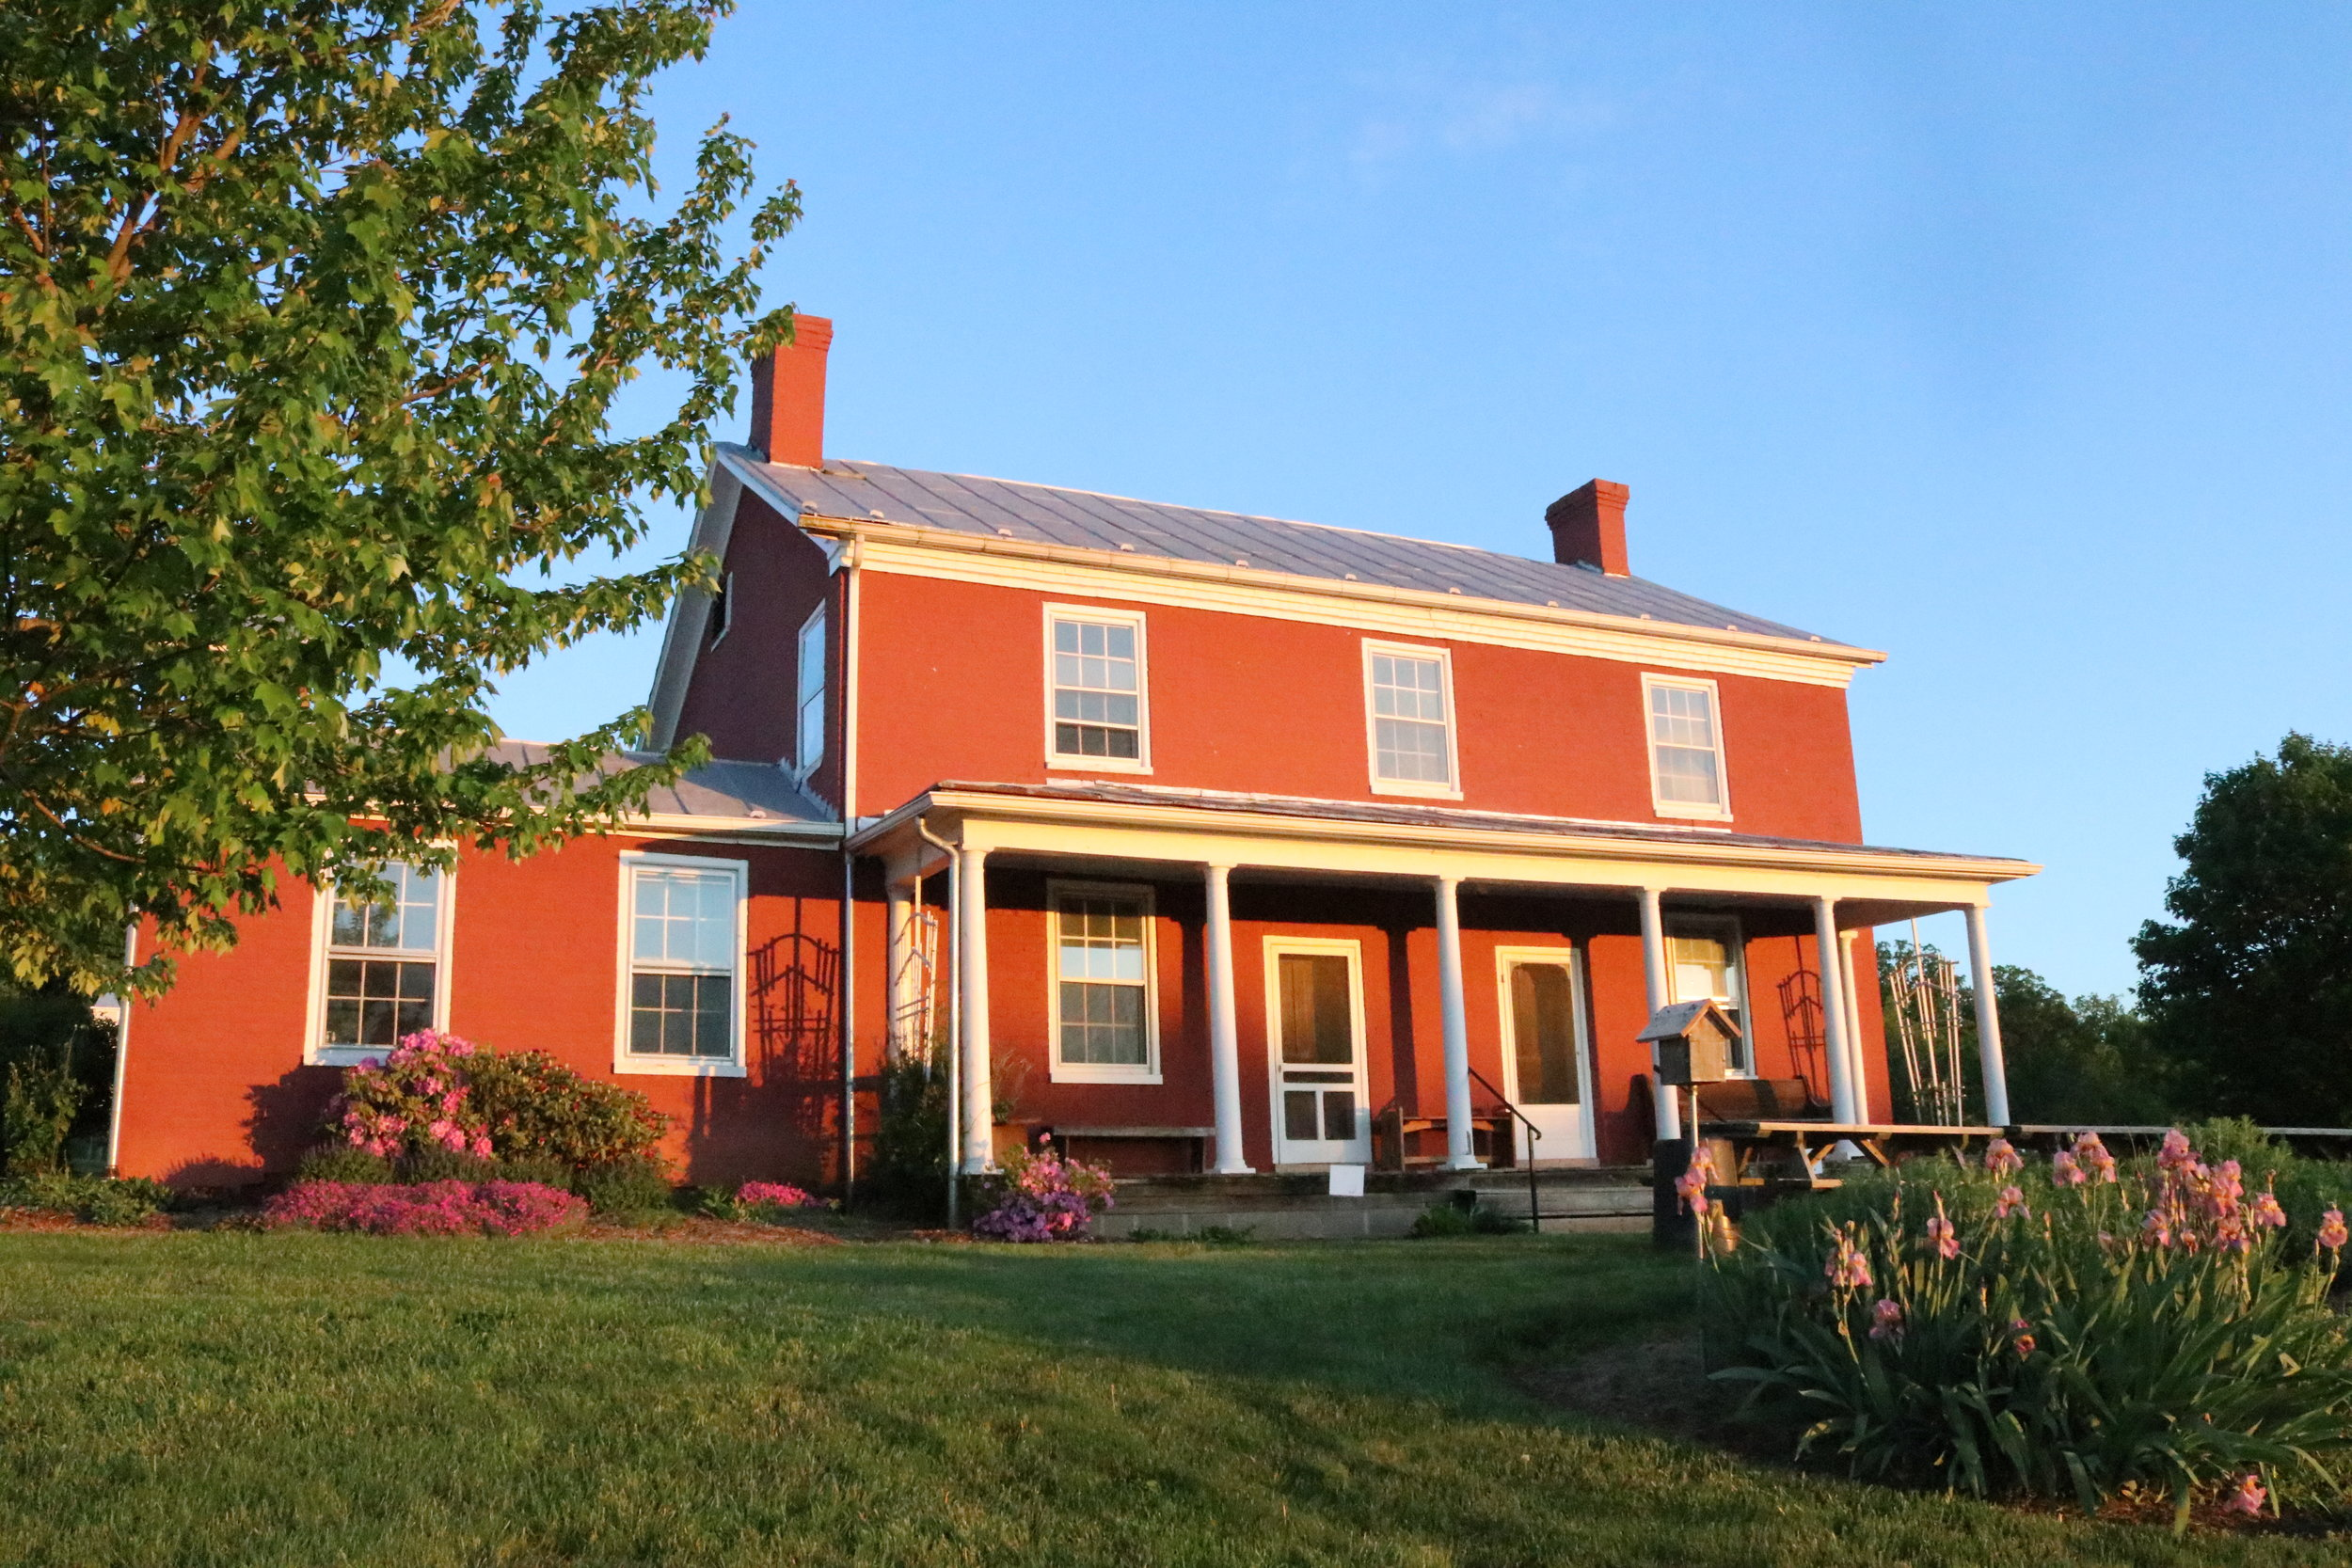 The Burkholder-Myers house on the CrossRoads campus of the Valley Brethren-Mennonite Heritage Center. The widow Rebecca Burkholder is known to have harbored young men escaping conscription into the Confederate army in this house.